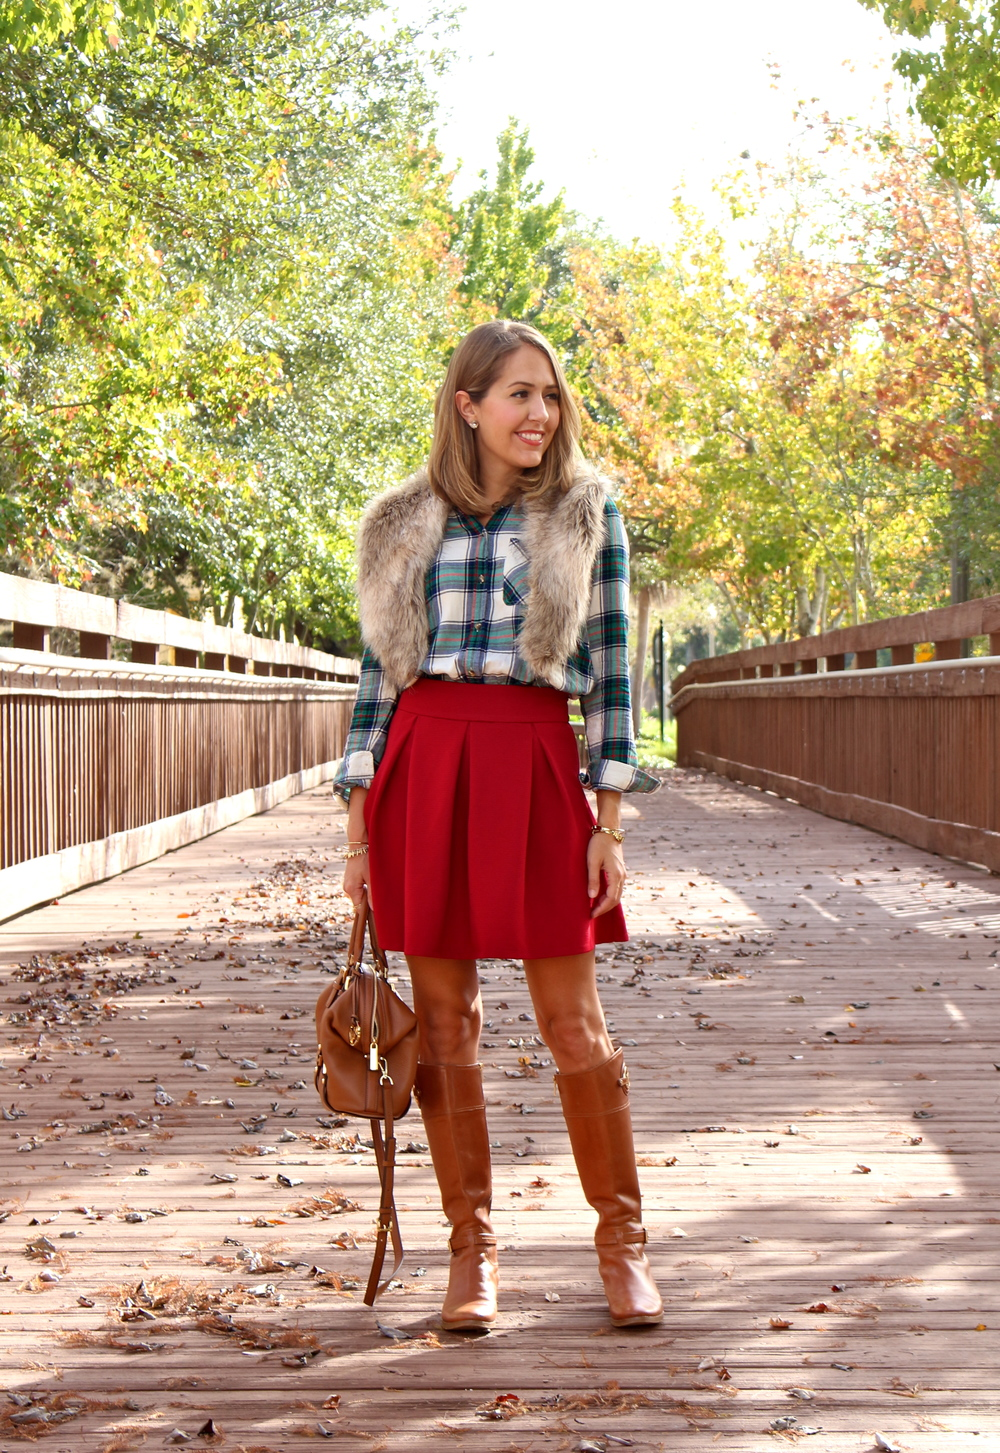 Plaid top, red skirt, riding boots